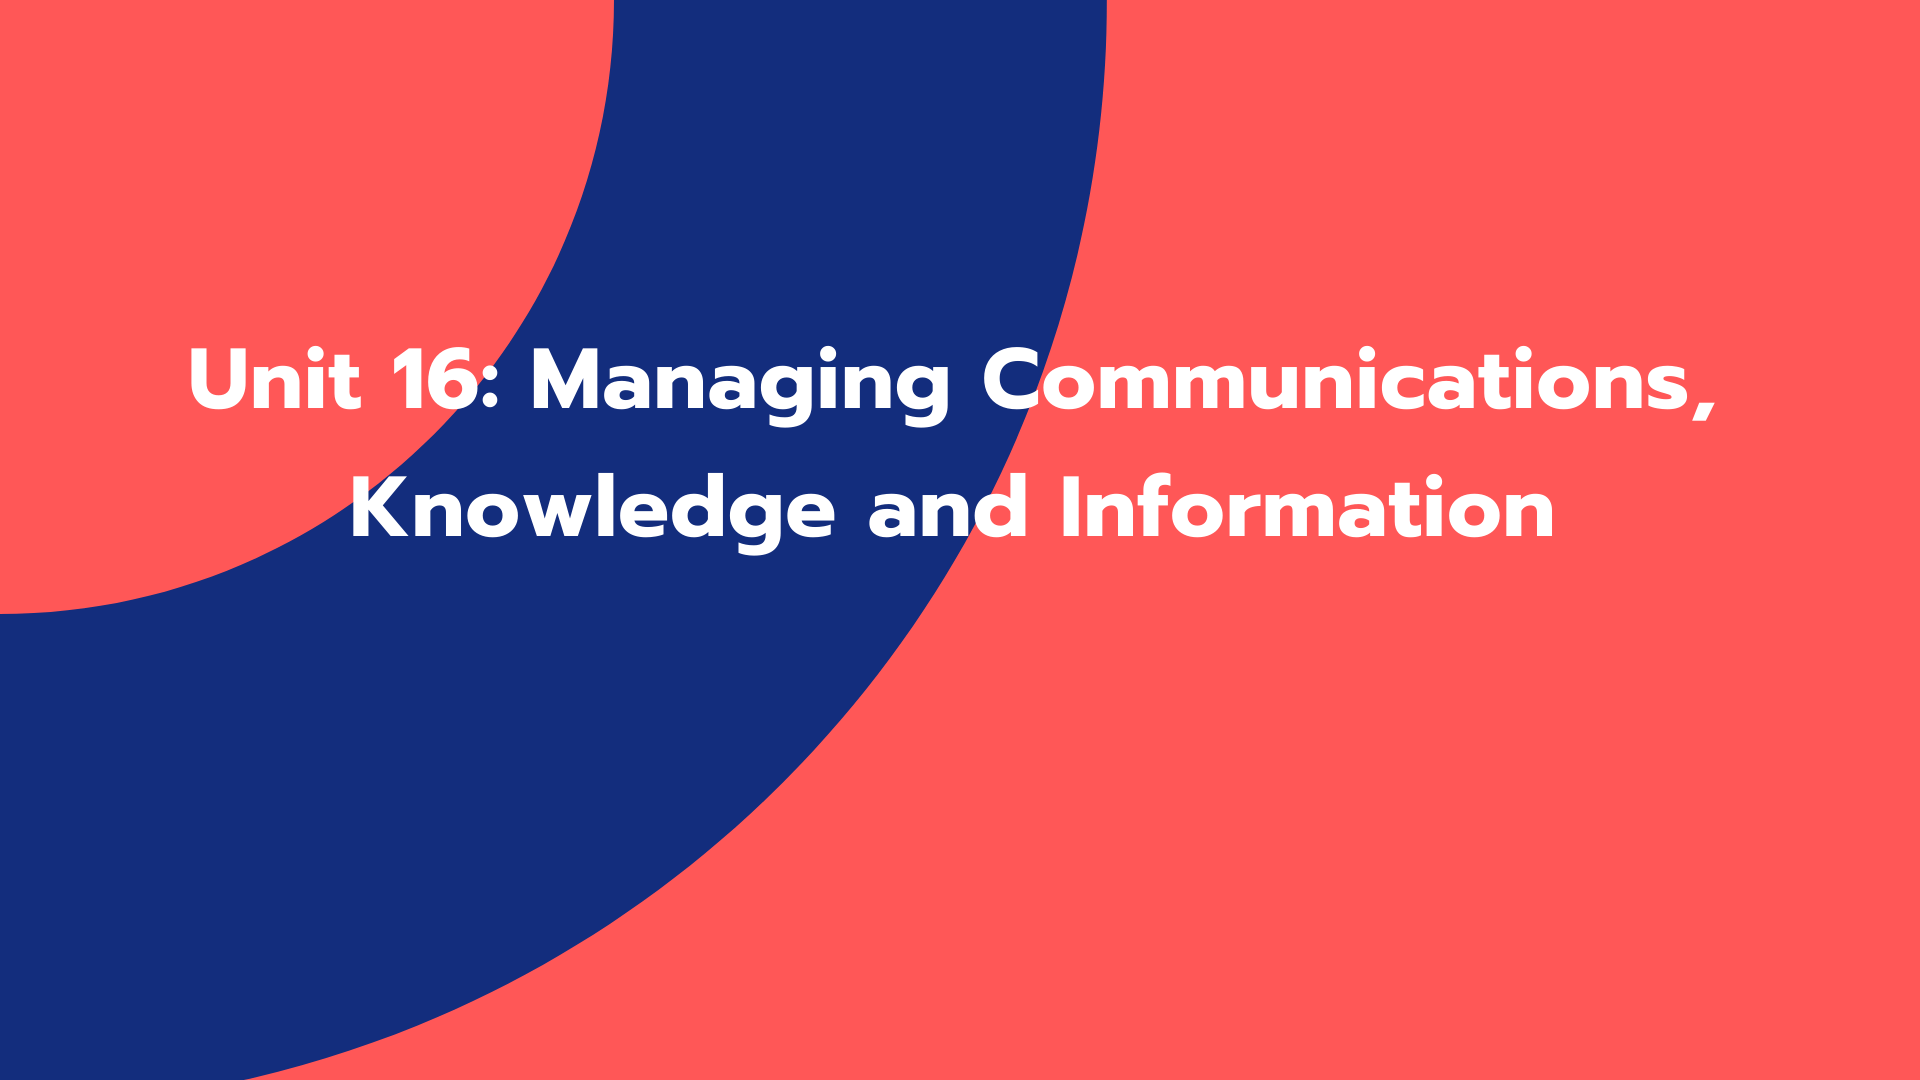 Unit 16: Managing Communications, Knowledge and Information